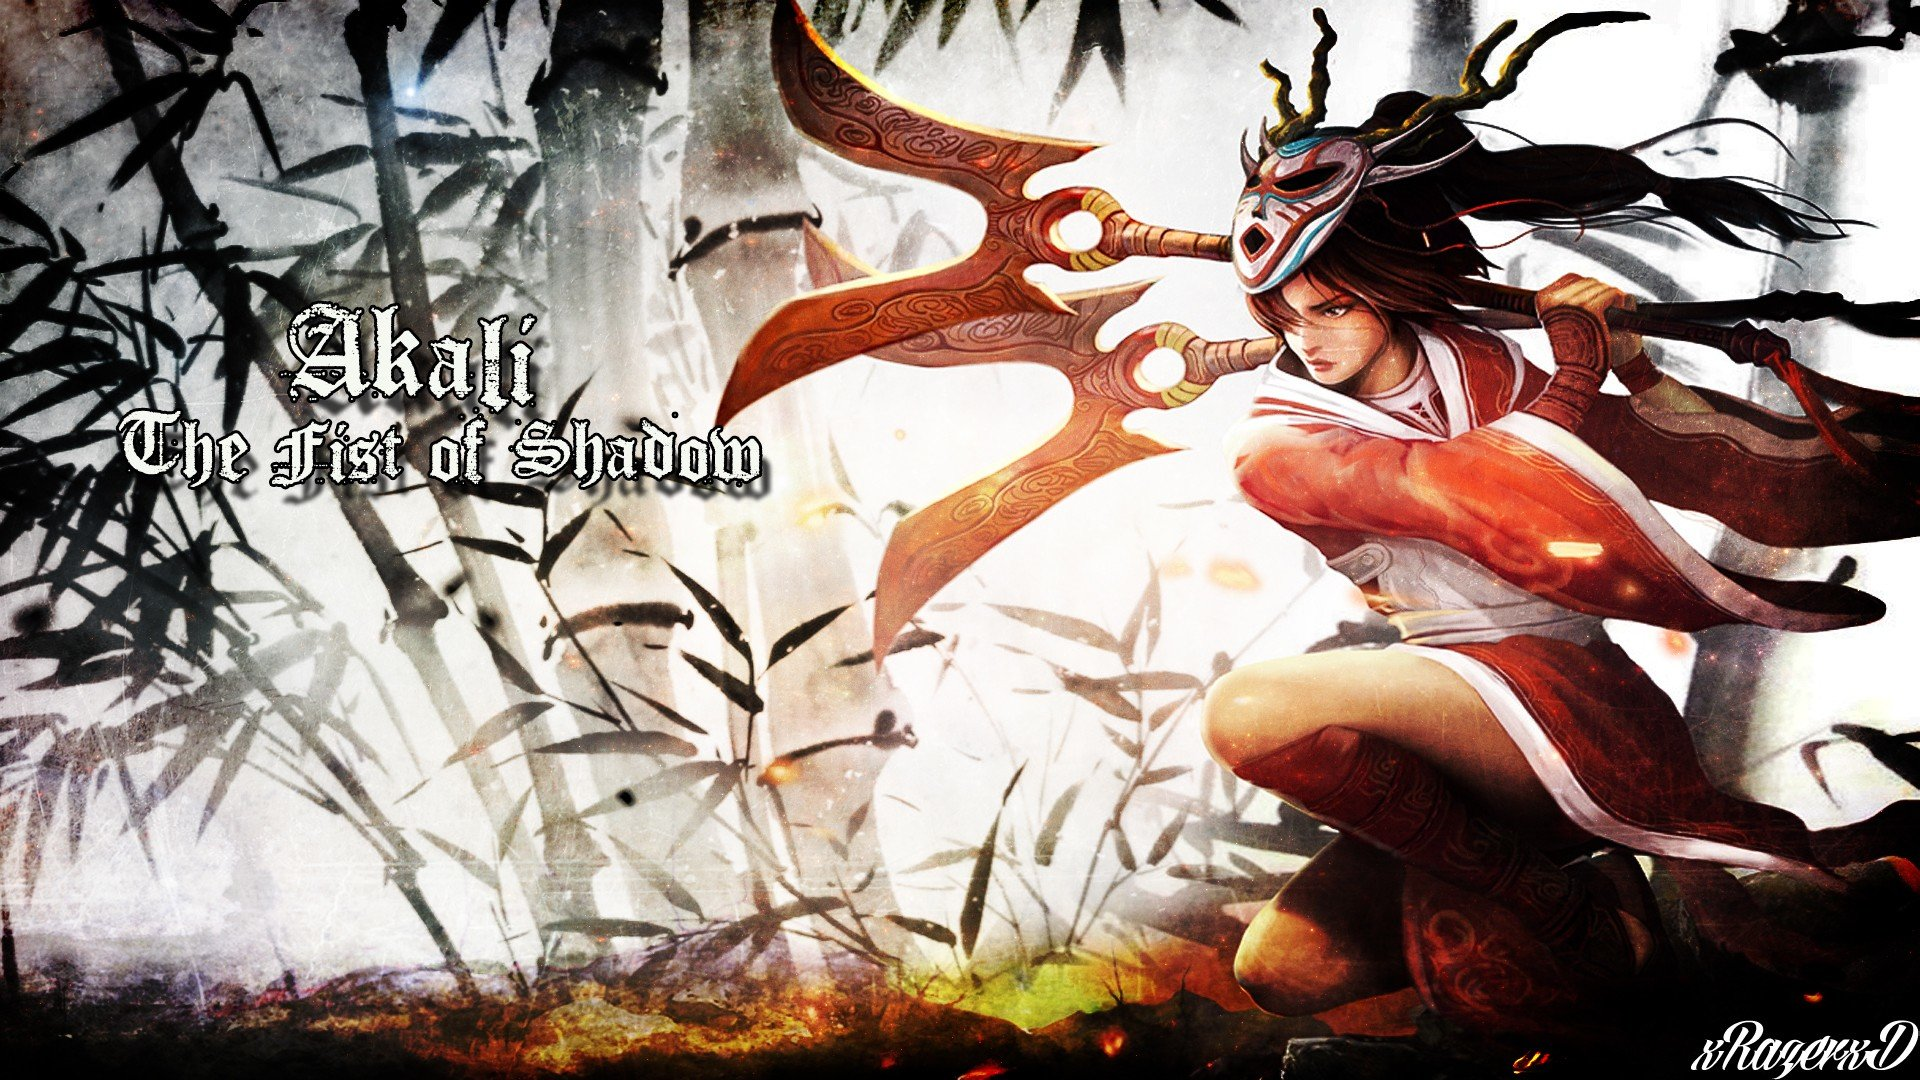 Akali League Of Legends Wallpapers 1920x1080 Full Hd 1080p